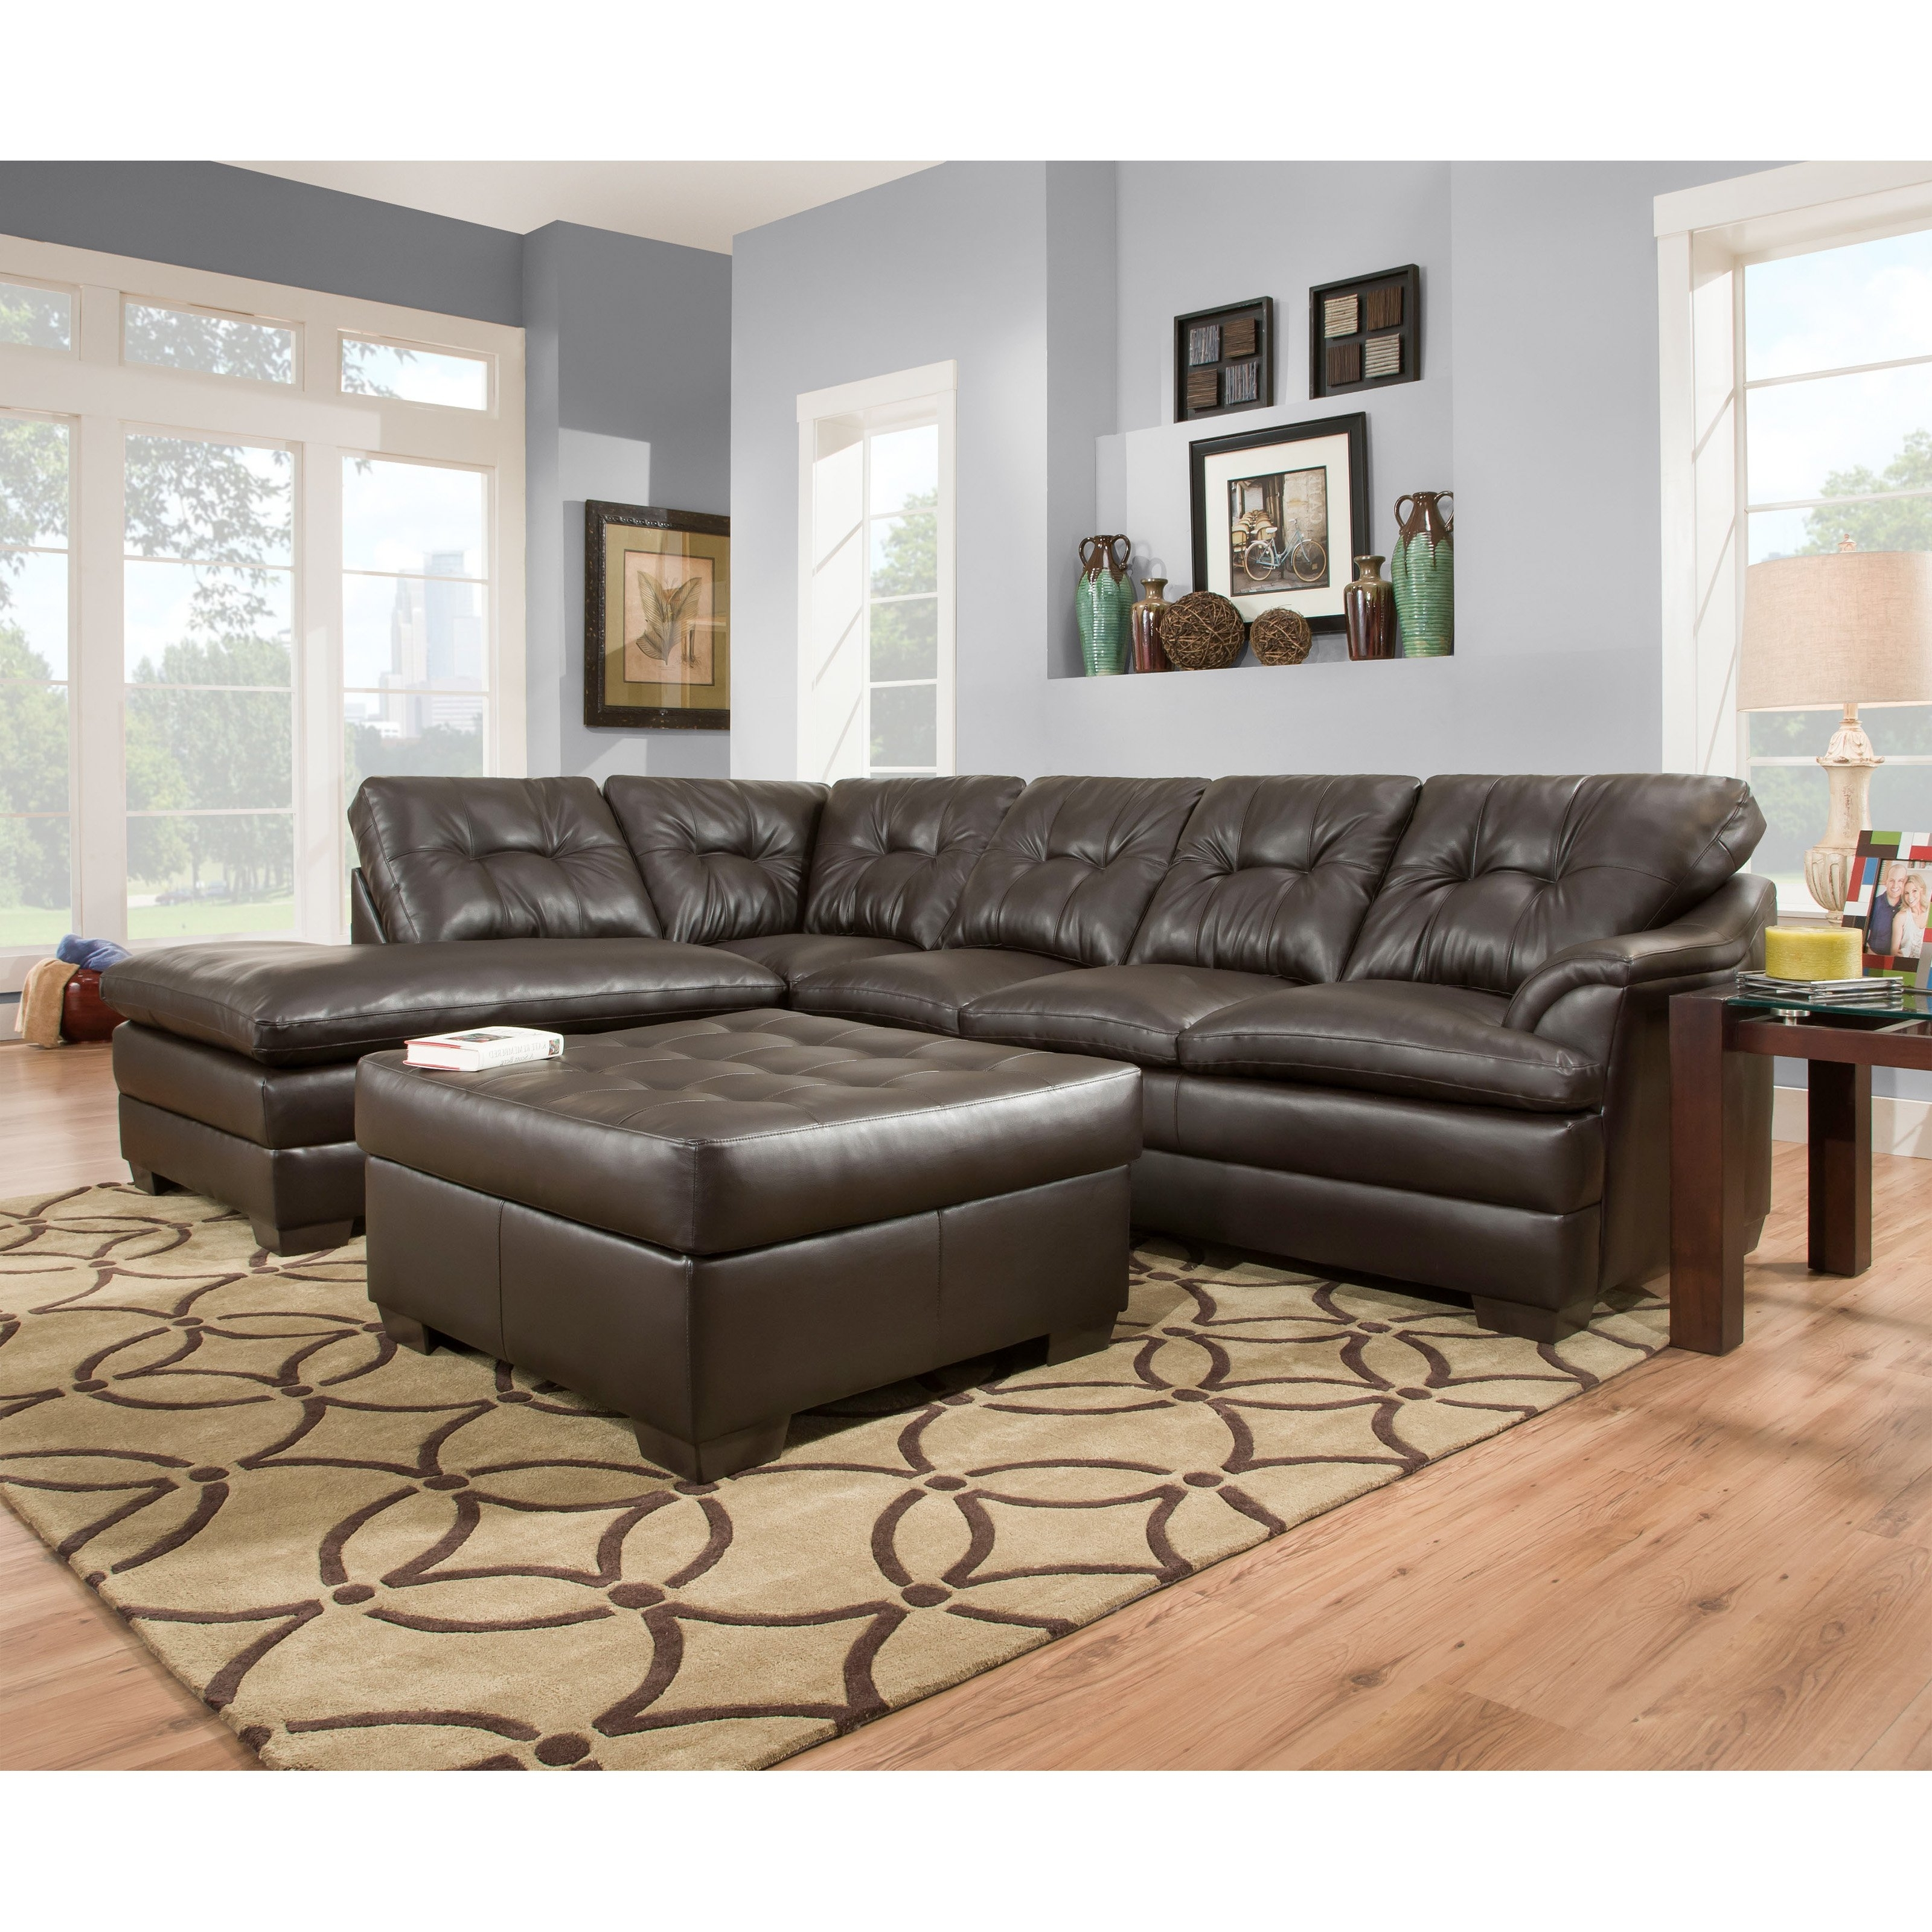 Nanaimo Sectional Sofas Regarding Well Known Simmons Upholstery Apollo Sectional With Optional Ottoman (View 6 of 15)